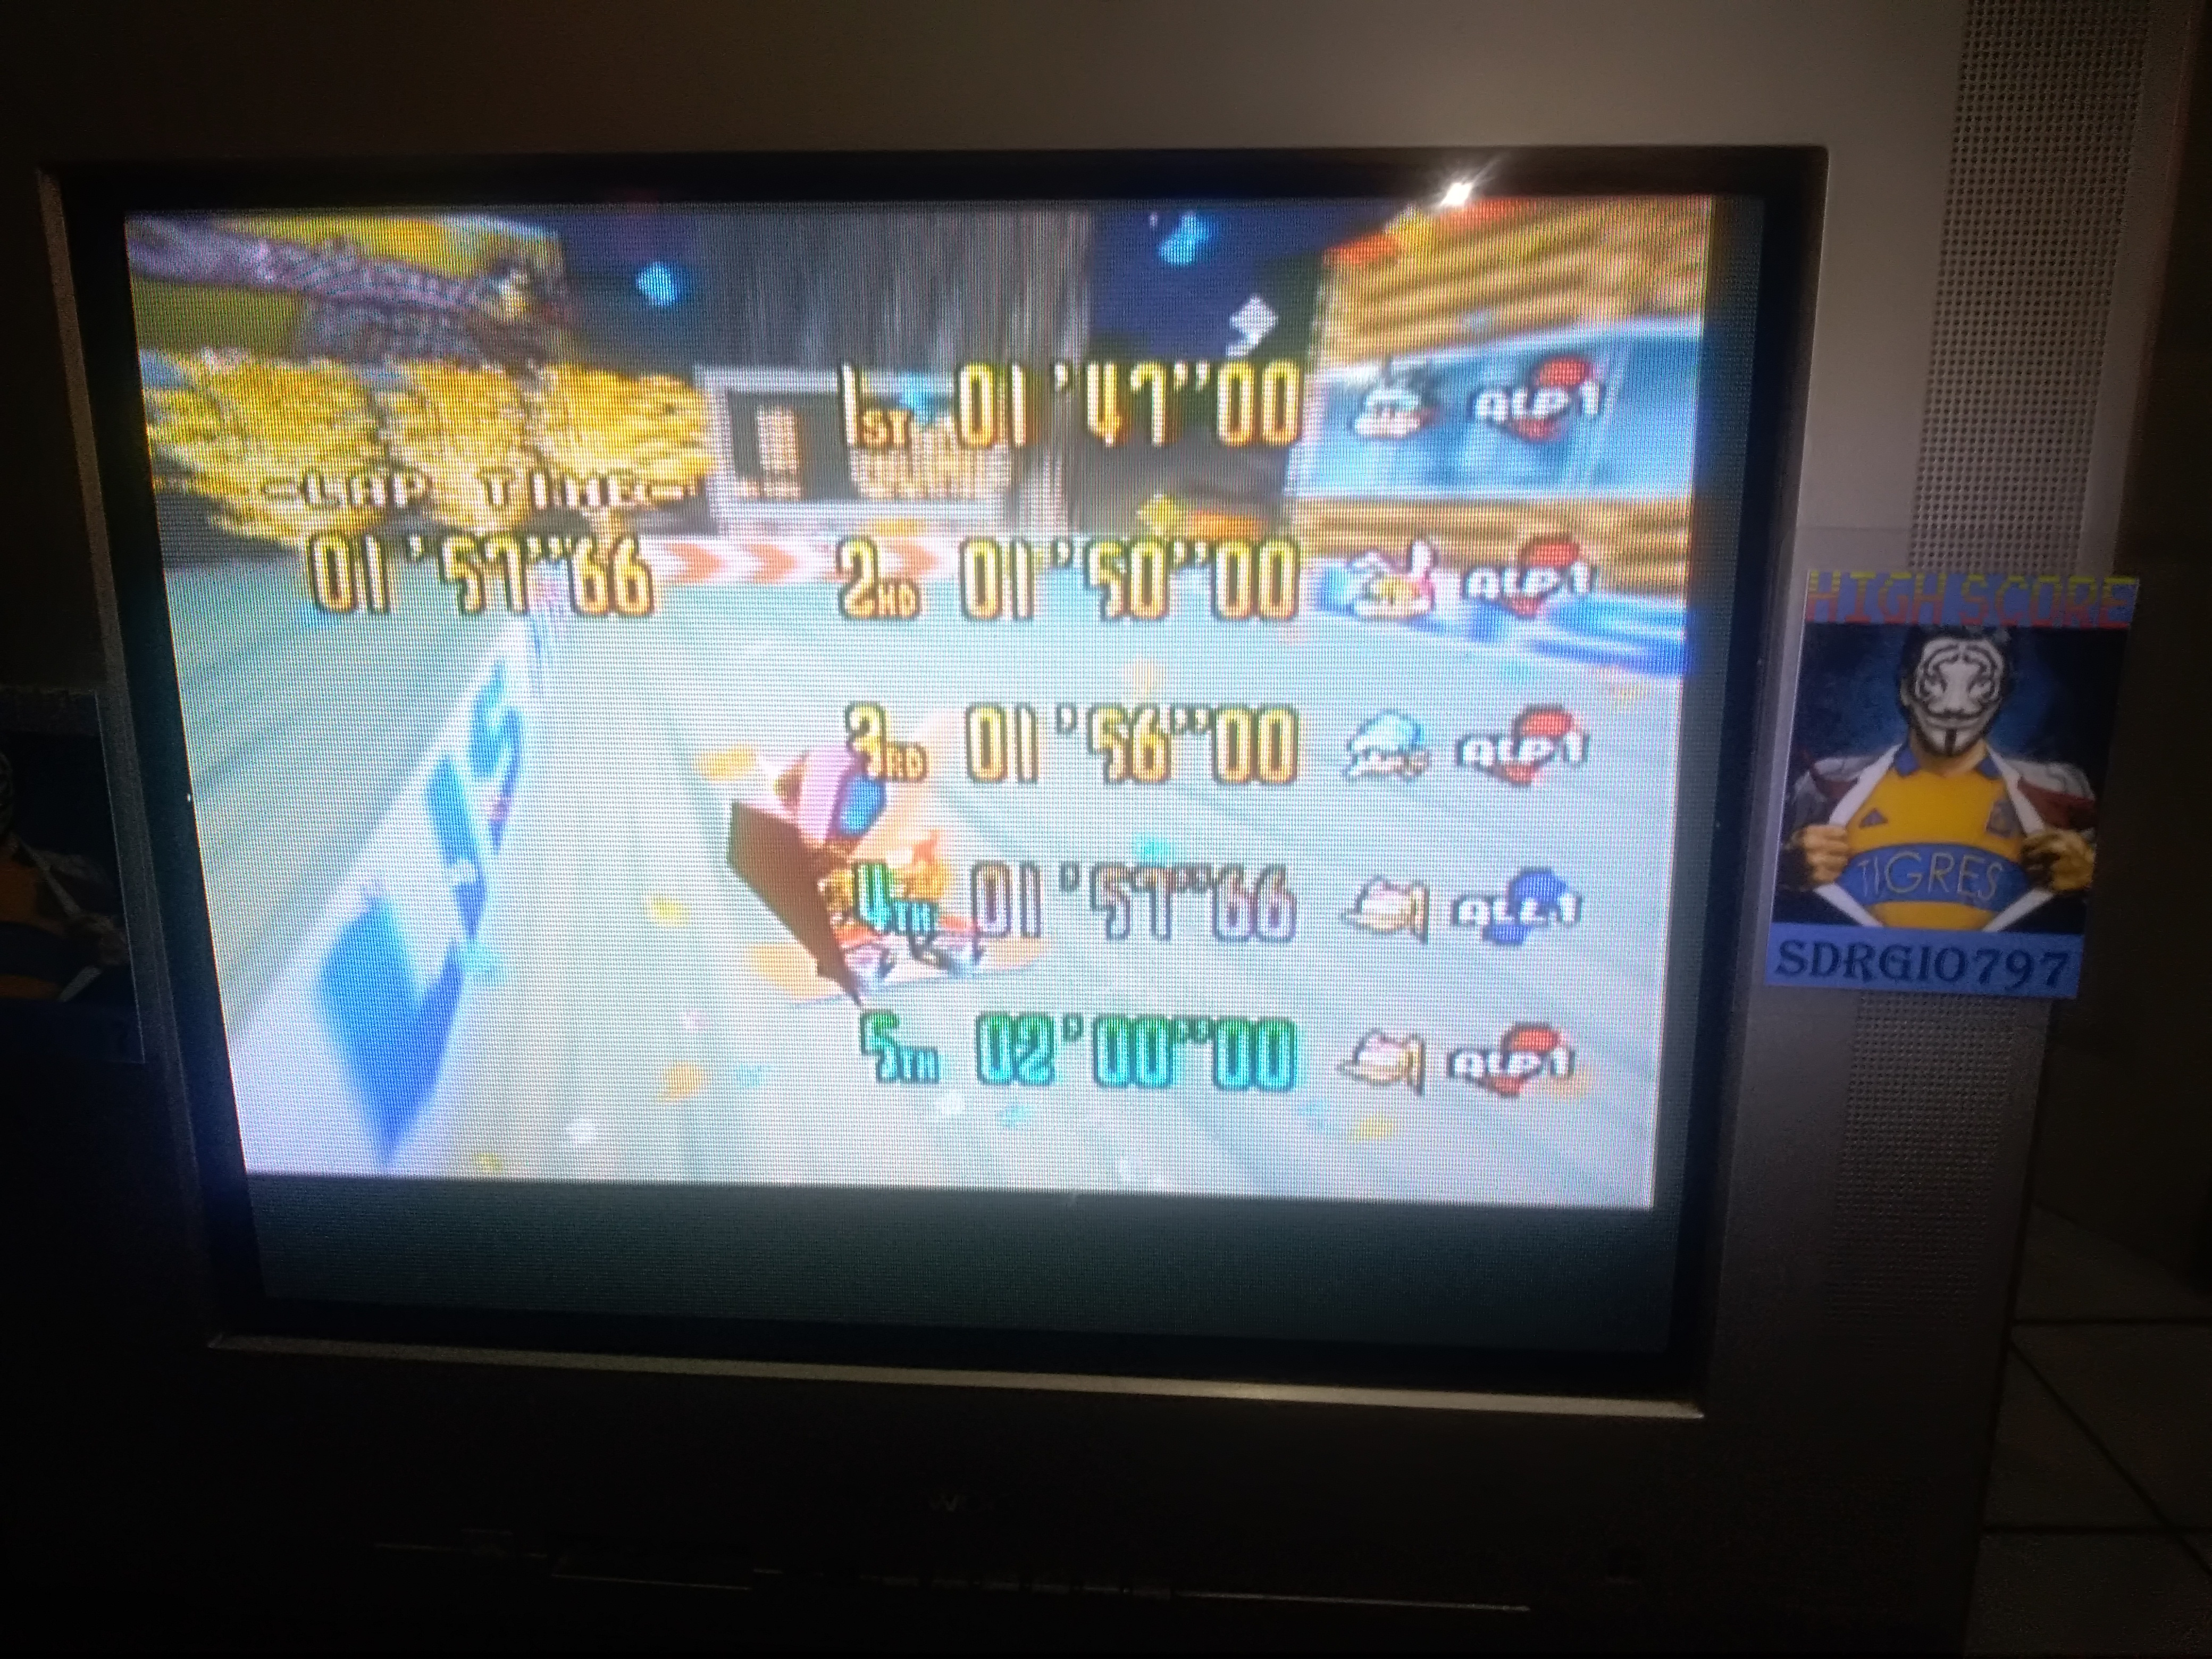 Sdrgio797: Snowboard Kids: Time Attack [Night Highway/Fastest Lap] (N64 Emulated) 0:01:57.66 points on 2020-08-09 18:06:07